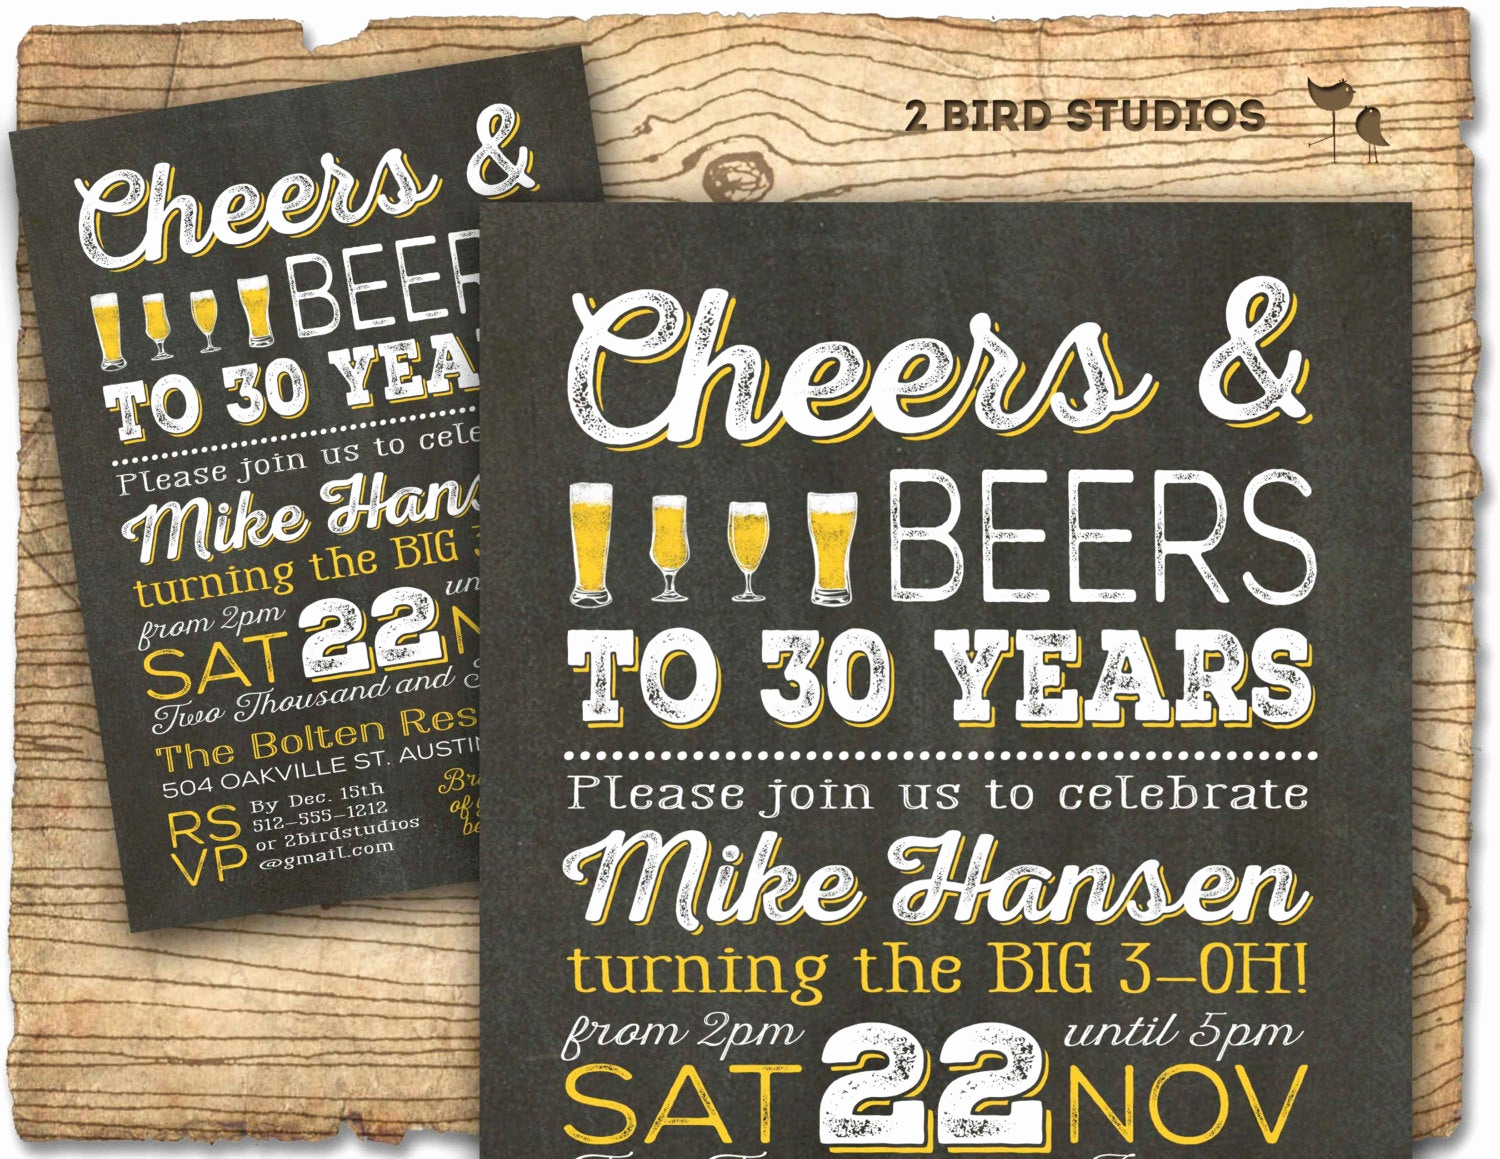 40th Birthday Invitation Ideas New Beer Birthday Invitation Cheers and Beers by 2birdstudios